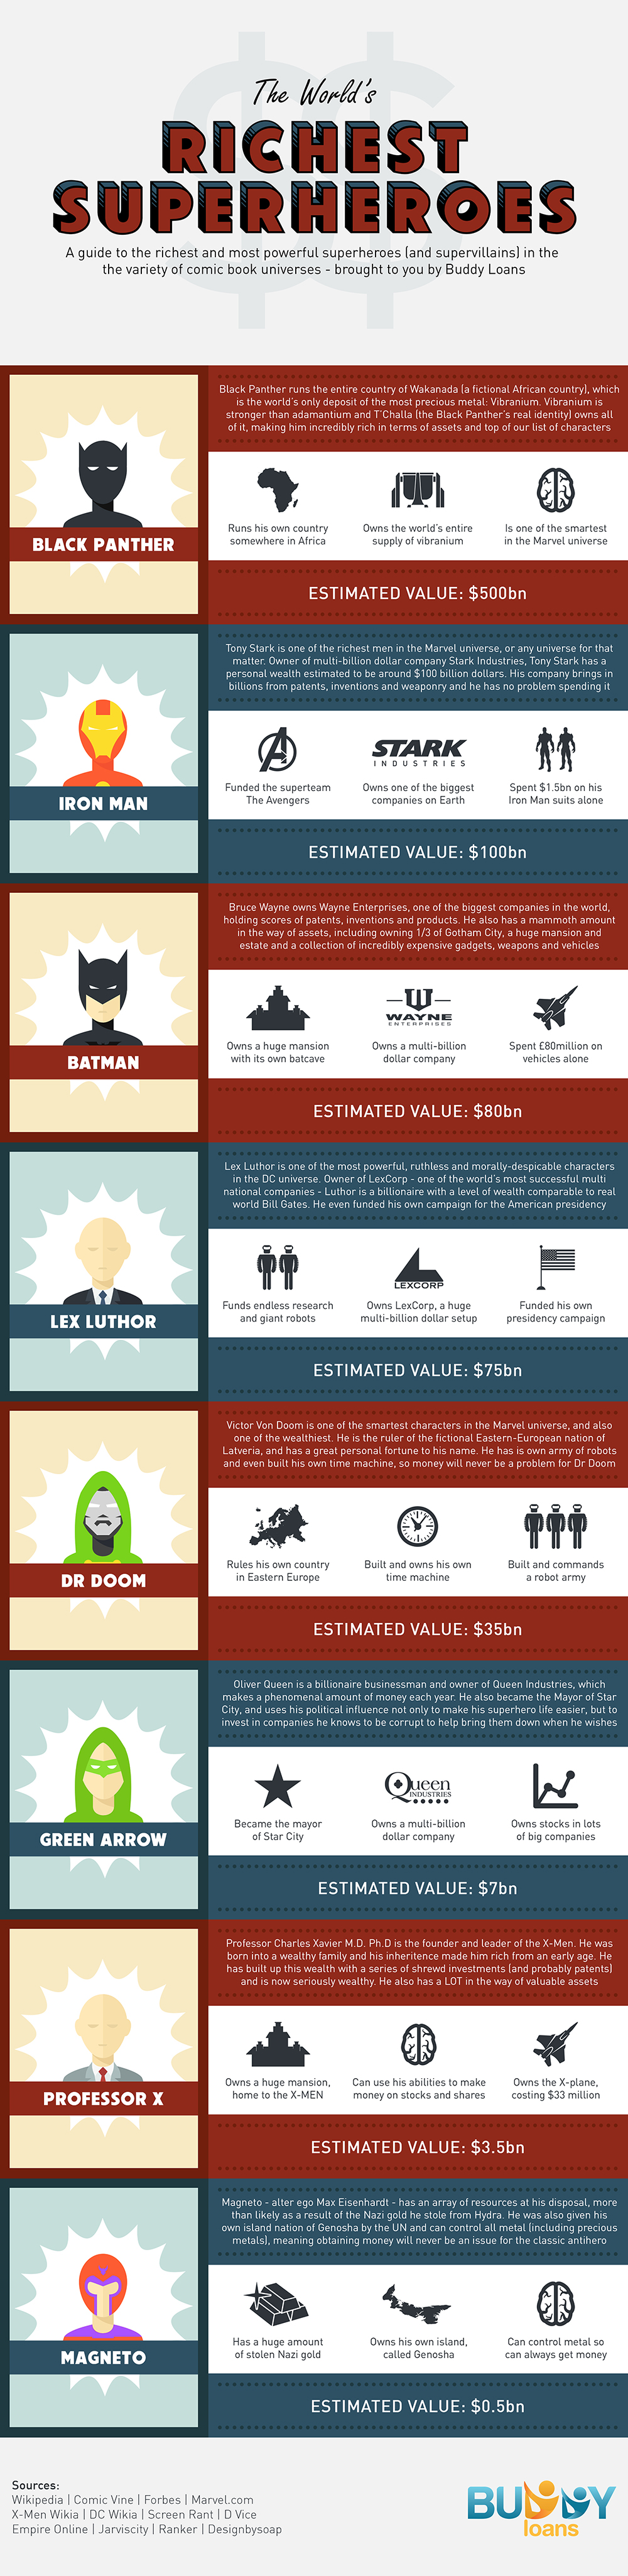 Richest-Superheroes